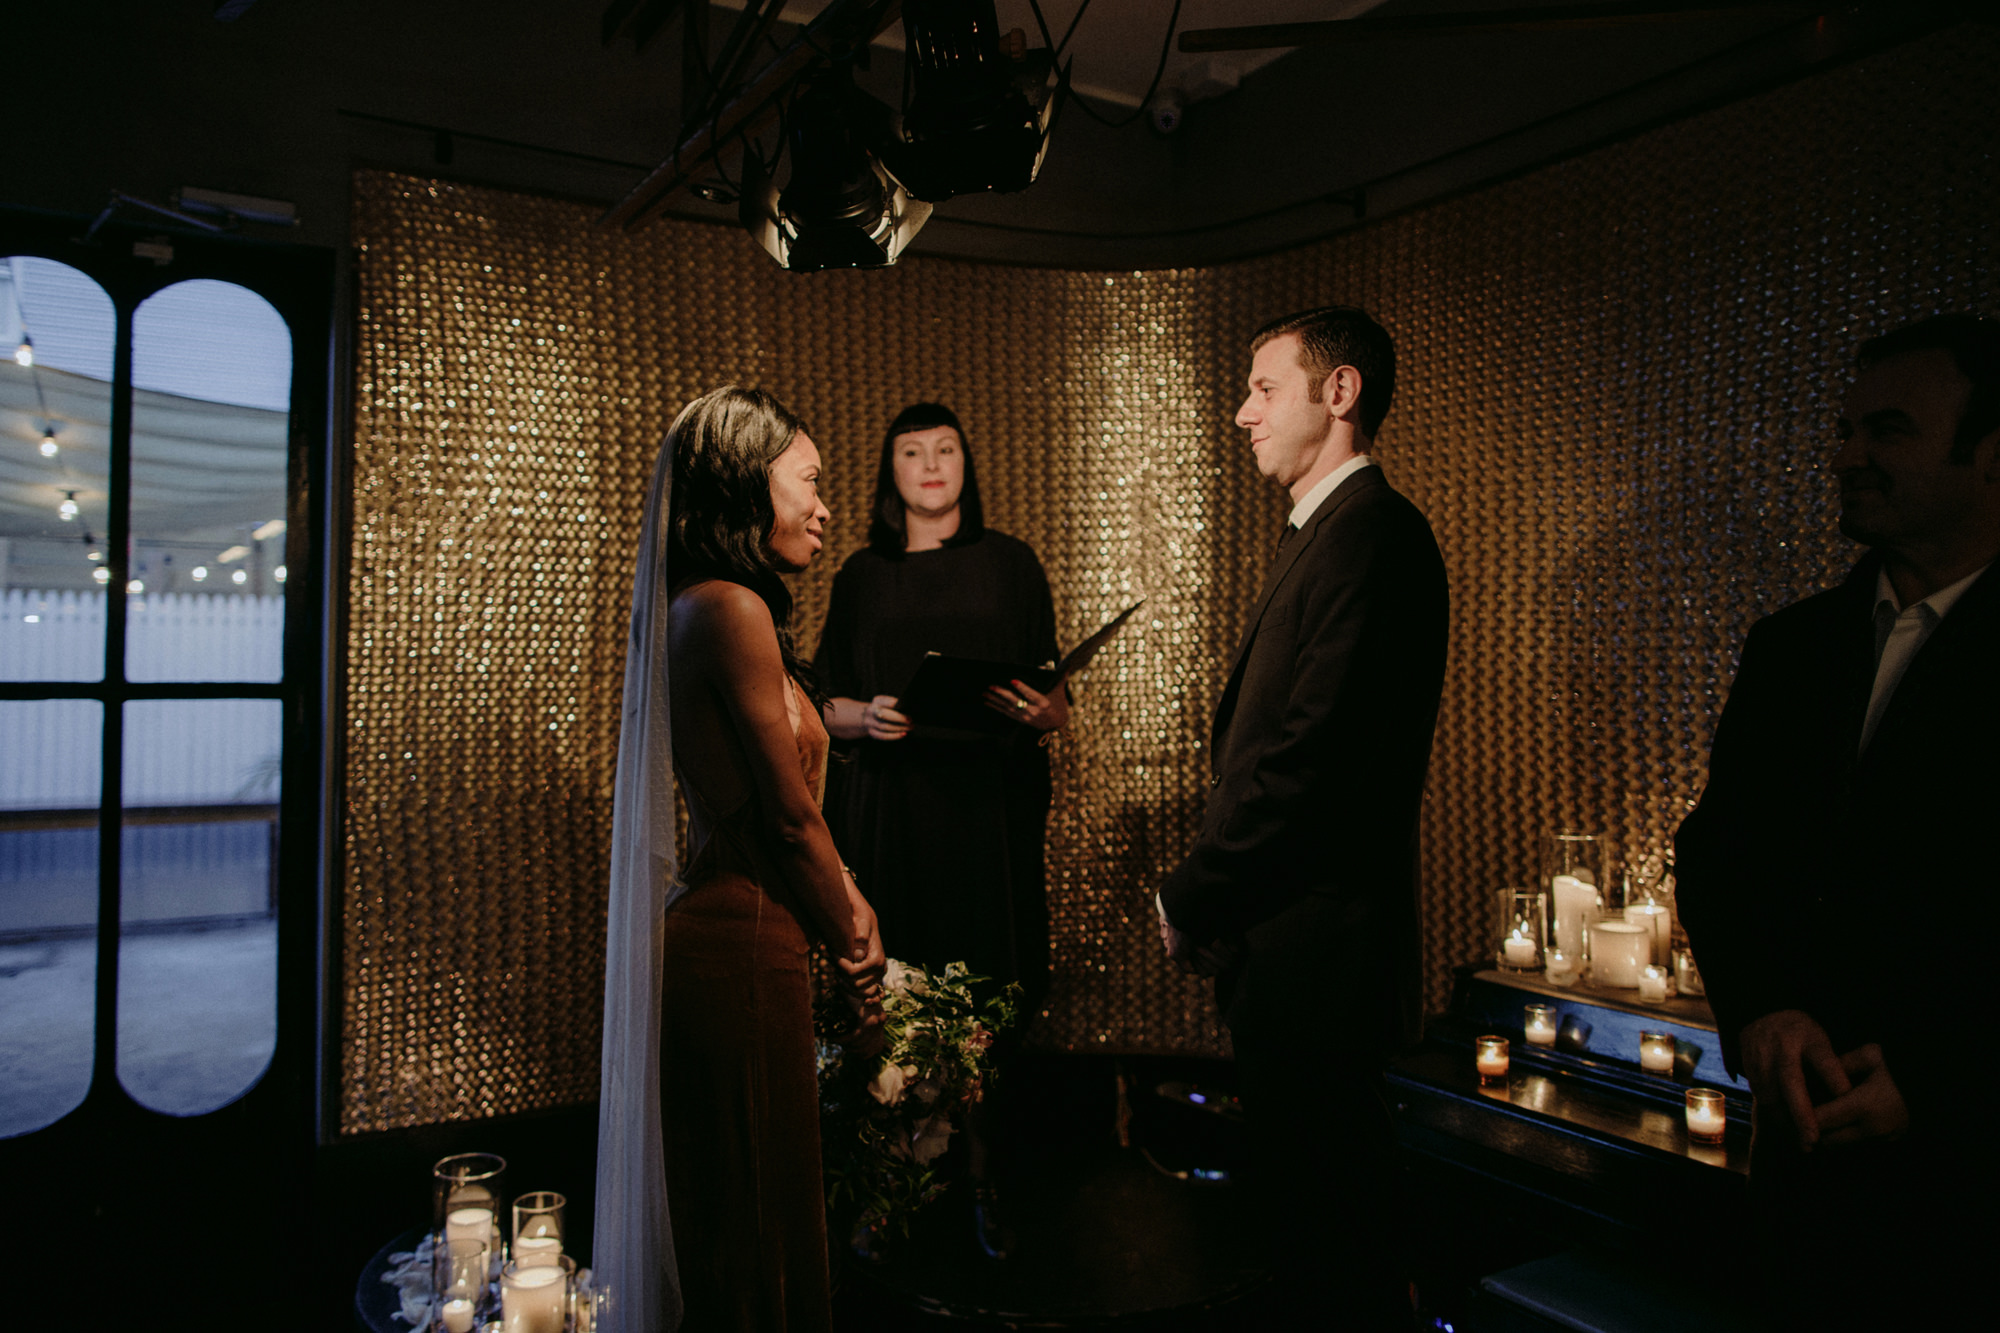 BROOKLYN_ELOPEMENT_SAMMBLAKE_NDE_455.jpg